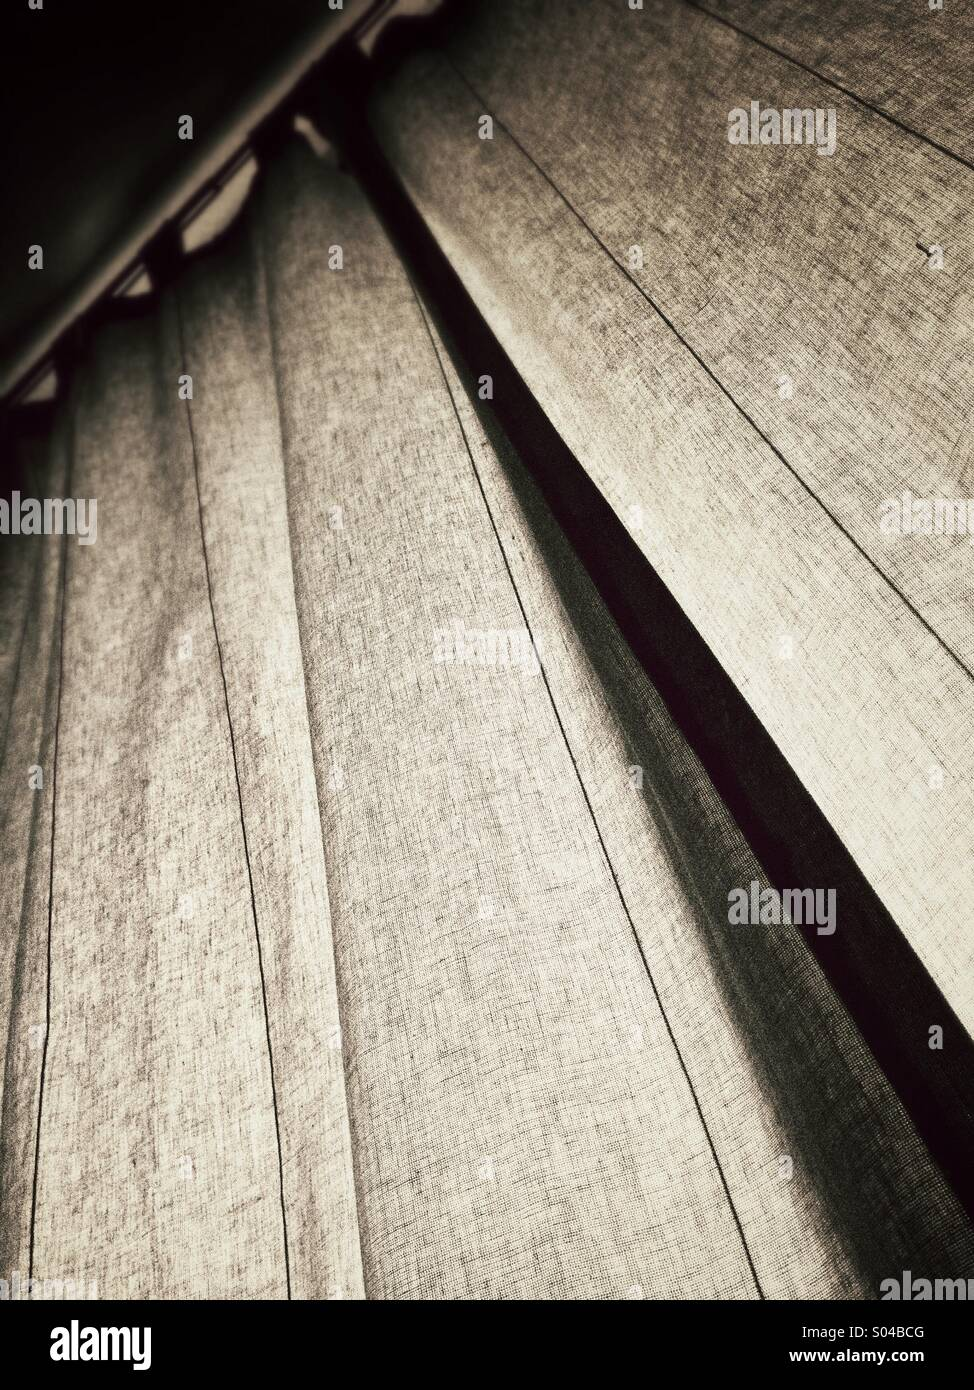 Curtains with tie backs - Stock Image